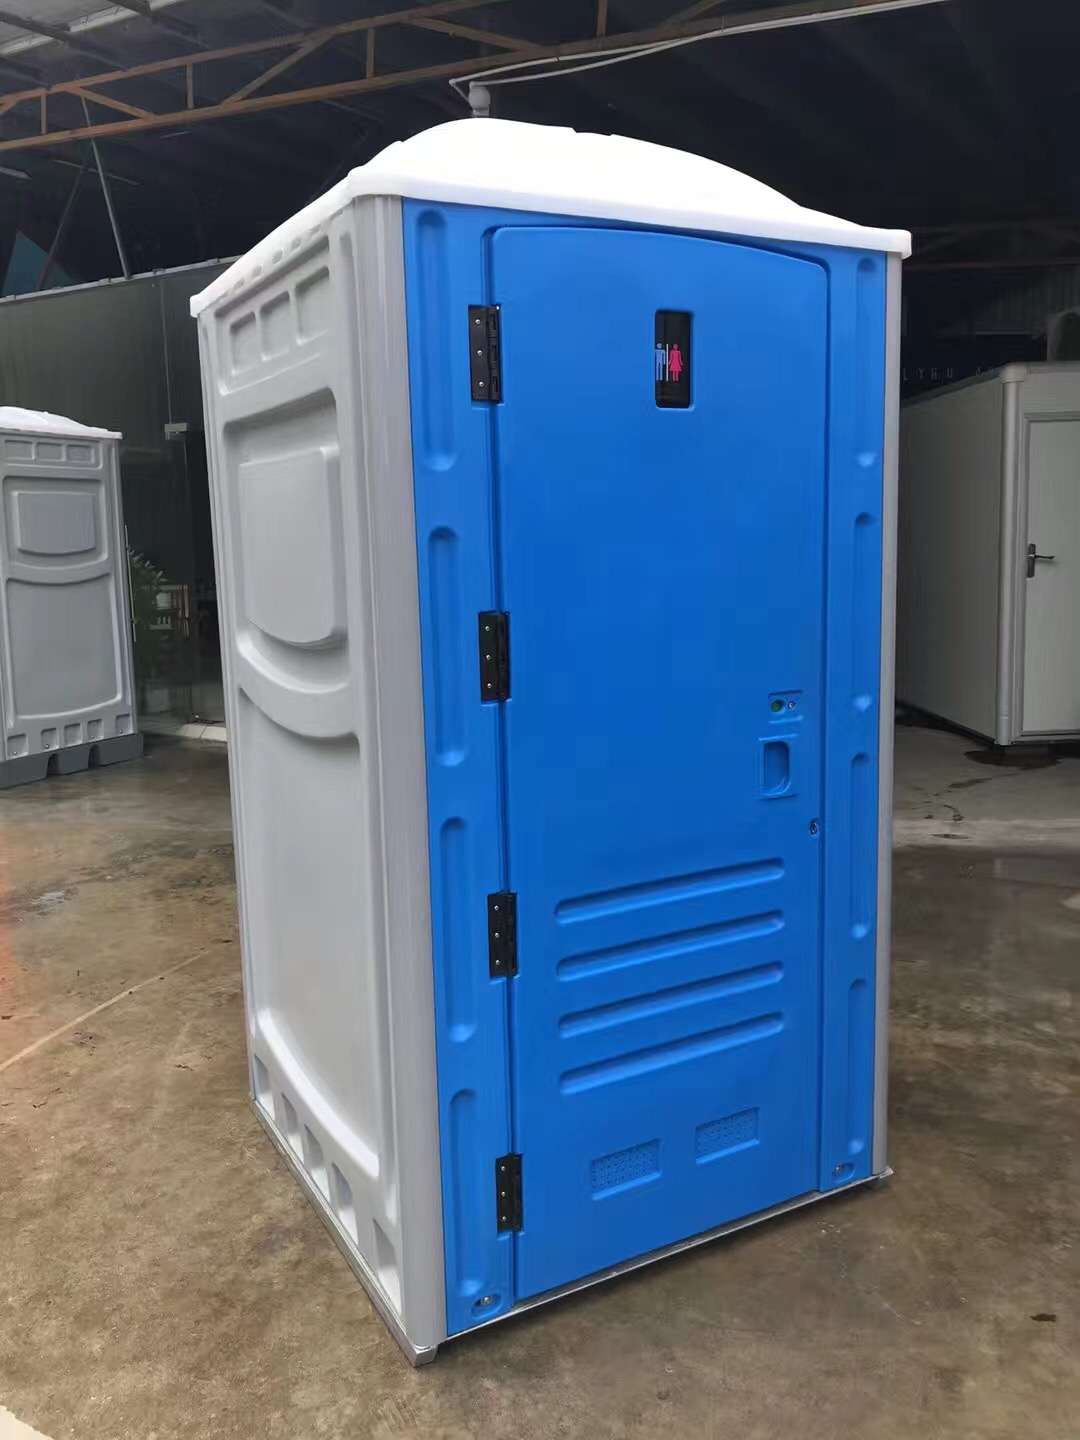 WELLCAMP Wellcamp HDPE portable sitting and squat toilet with waste tank and water tank Portable Toilet image2